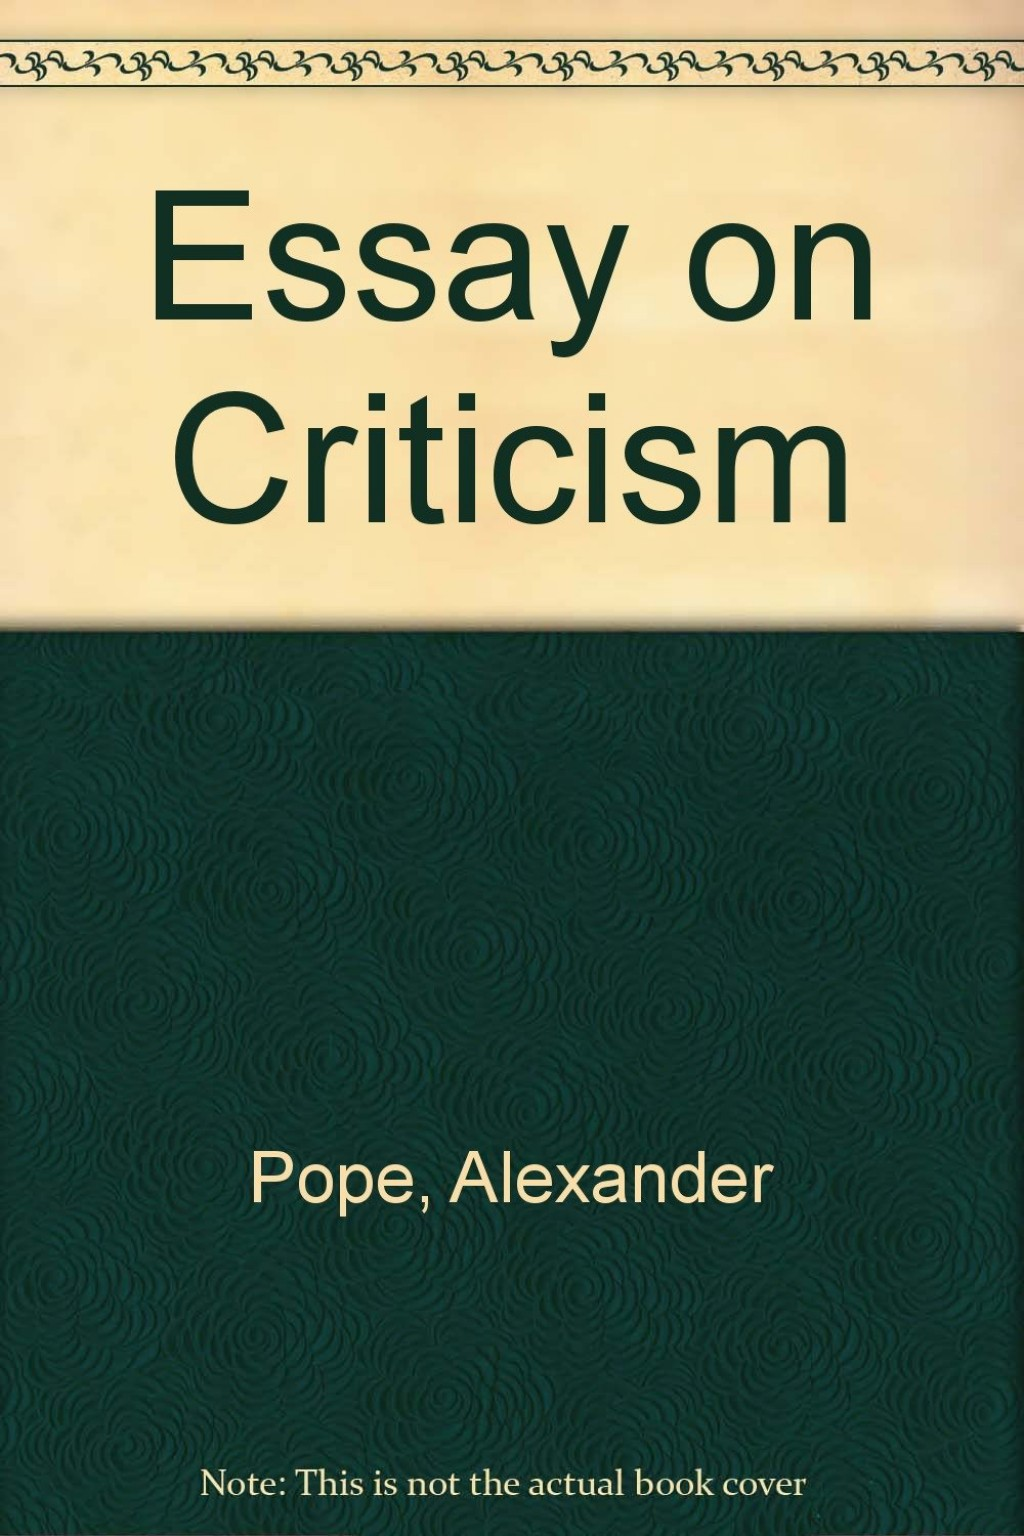 005 Alexander Pope Essay On Criticism Example Outstanding Part 1 Analysis Summary Large